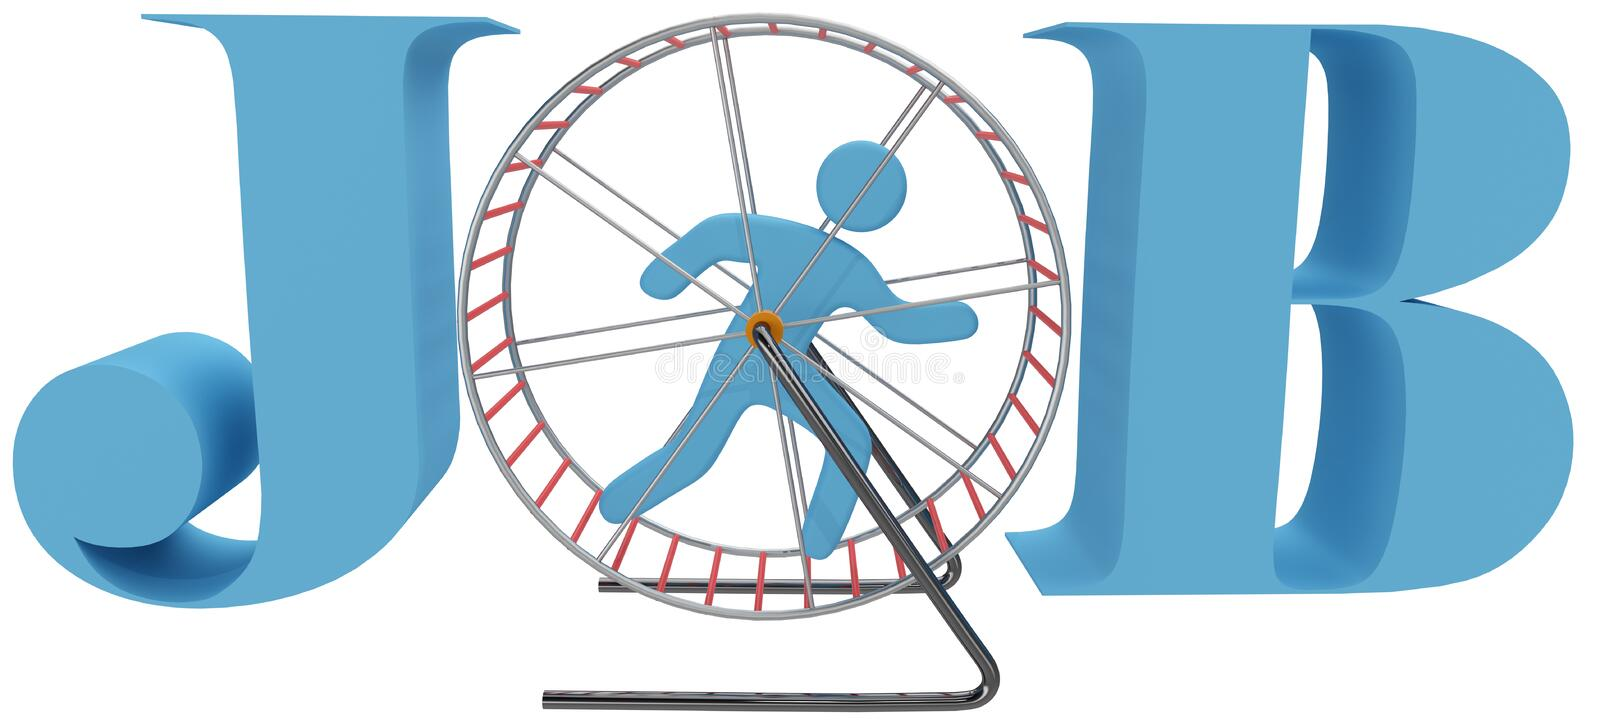 Person cage wheel rat race job. Person gets nowhere in rat race dead end job as hamster or mouse cage wheel treadmill vector illustration